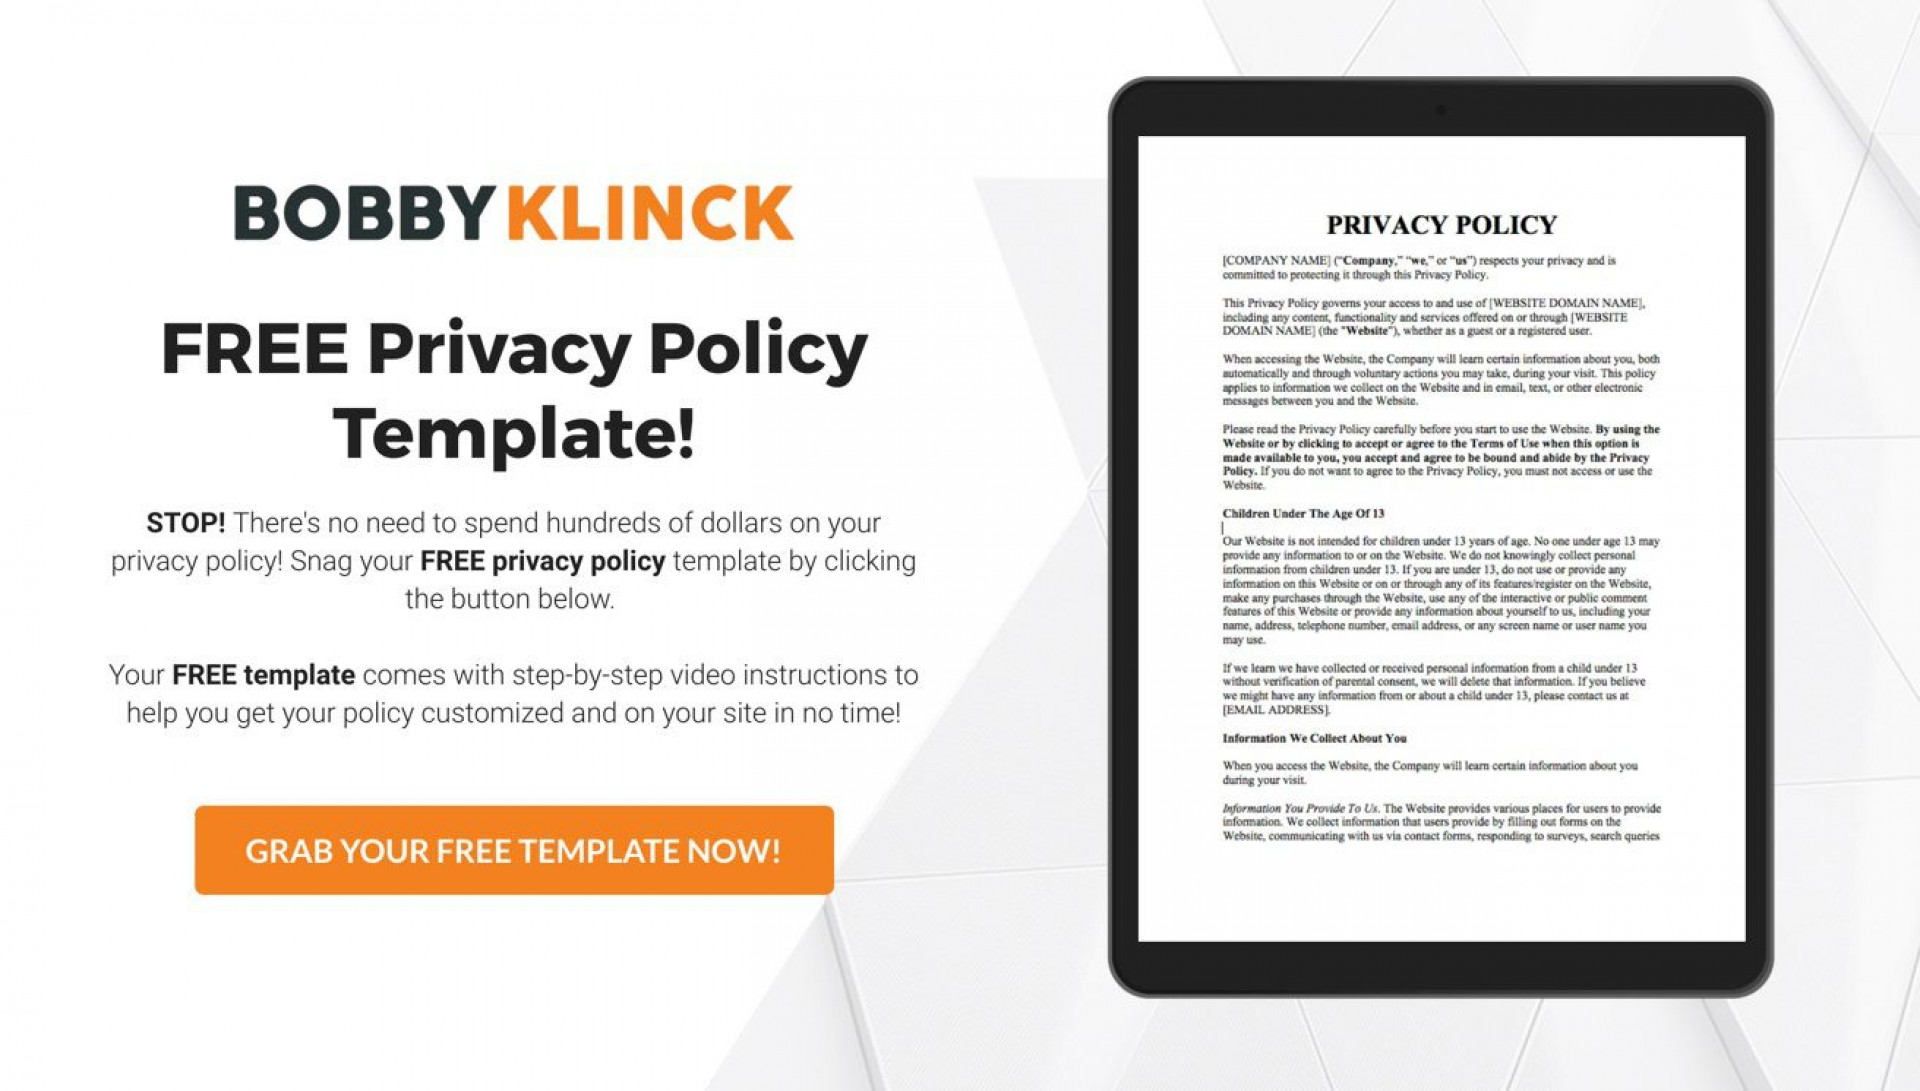 004 Exceptional Company Privacy Policy Template Example  For Software Australia1920